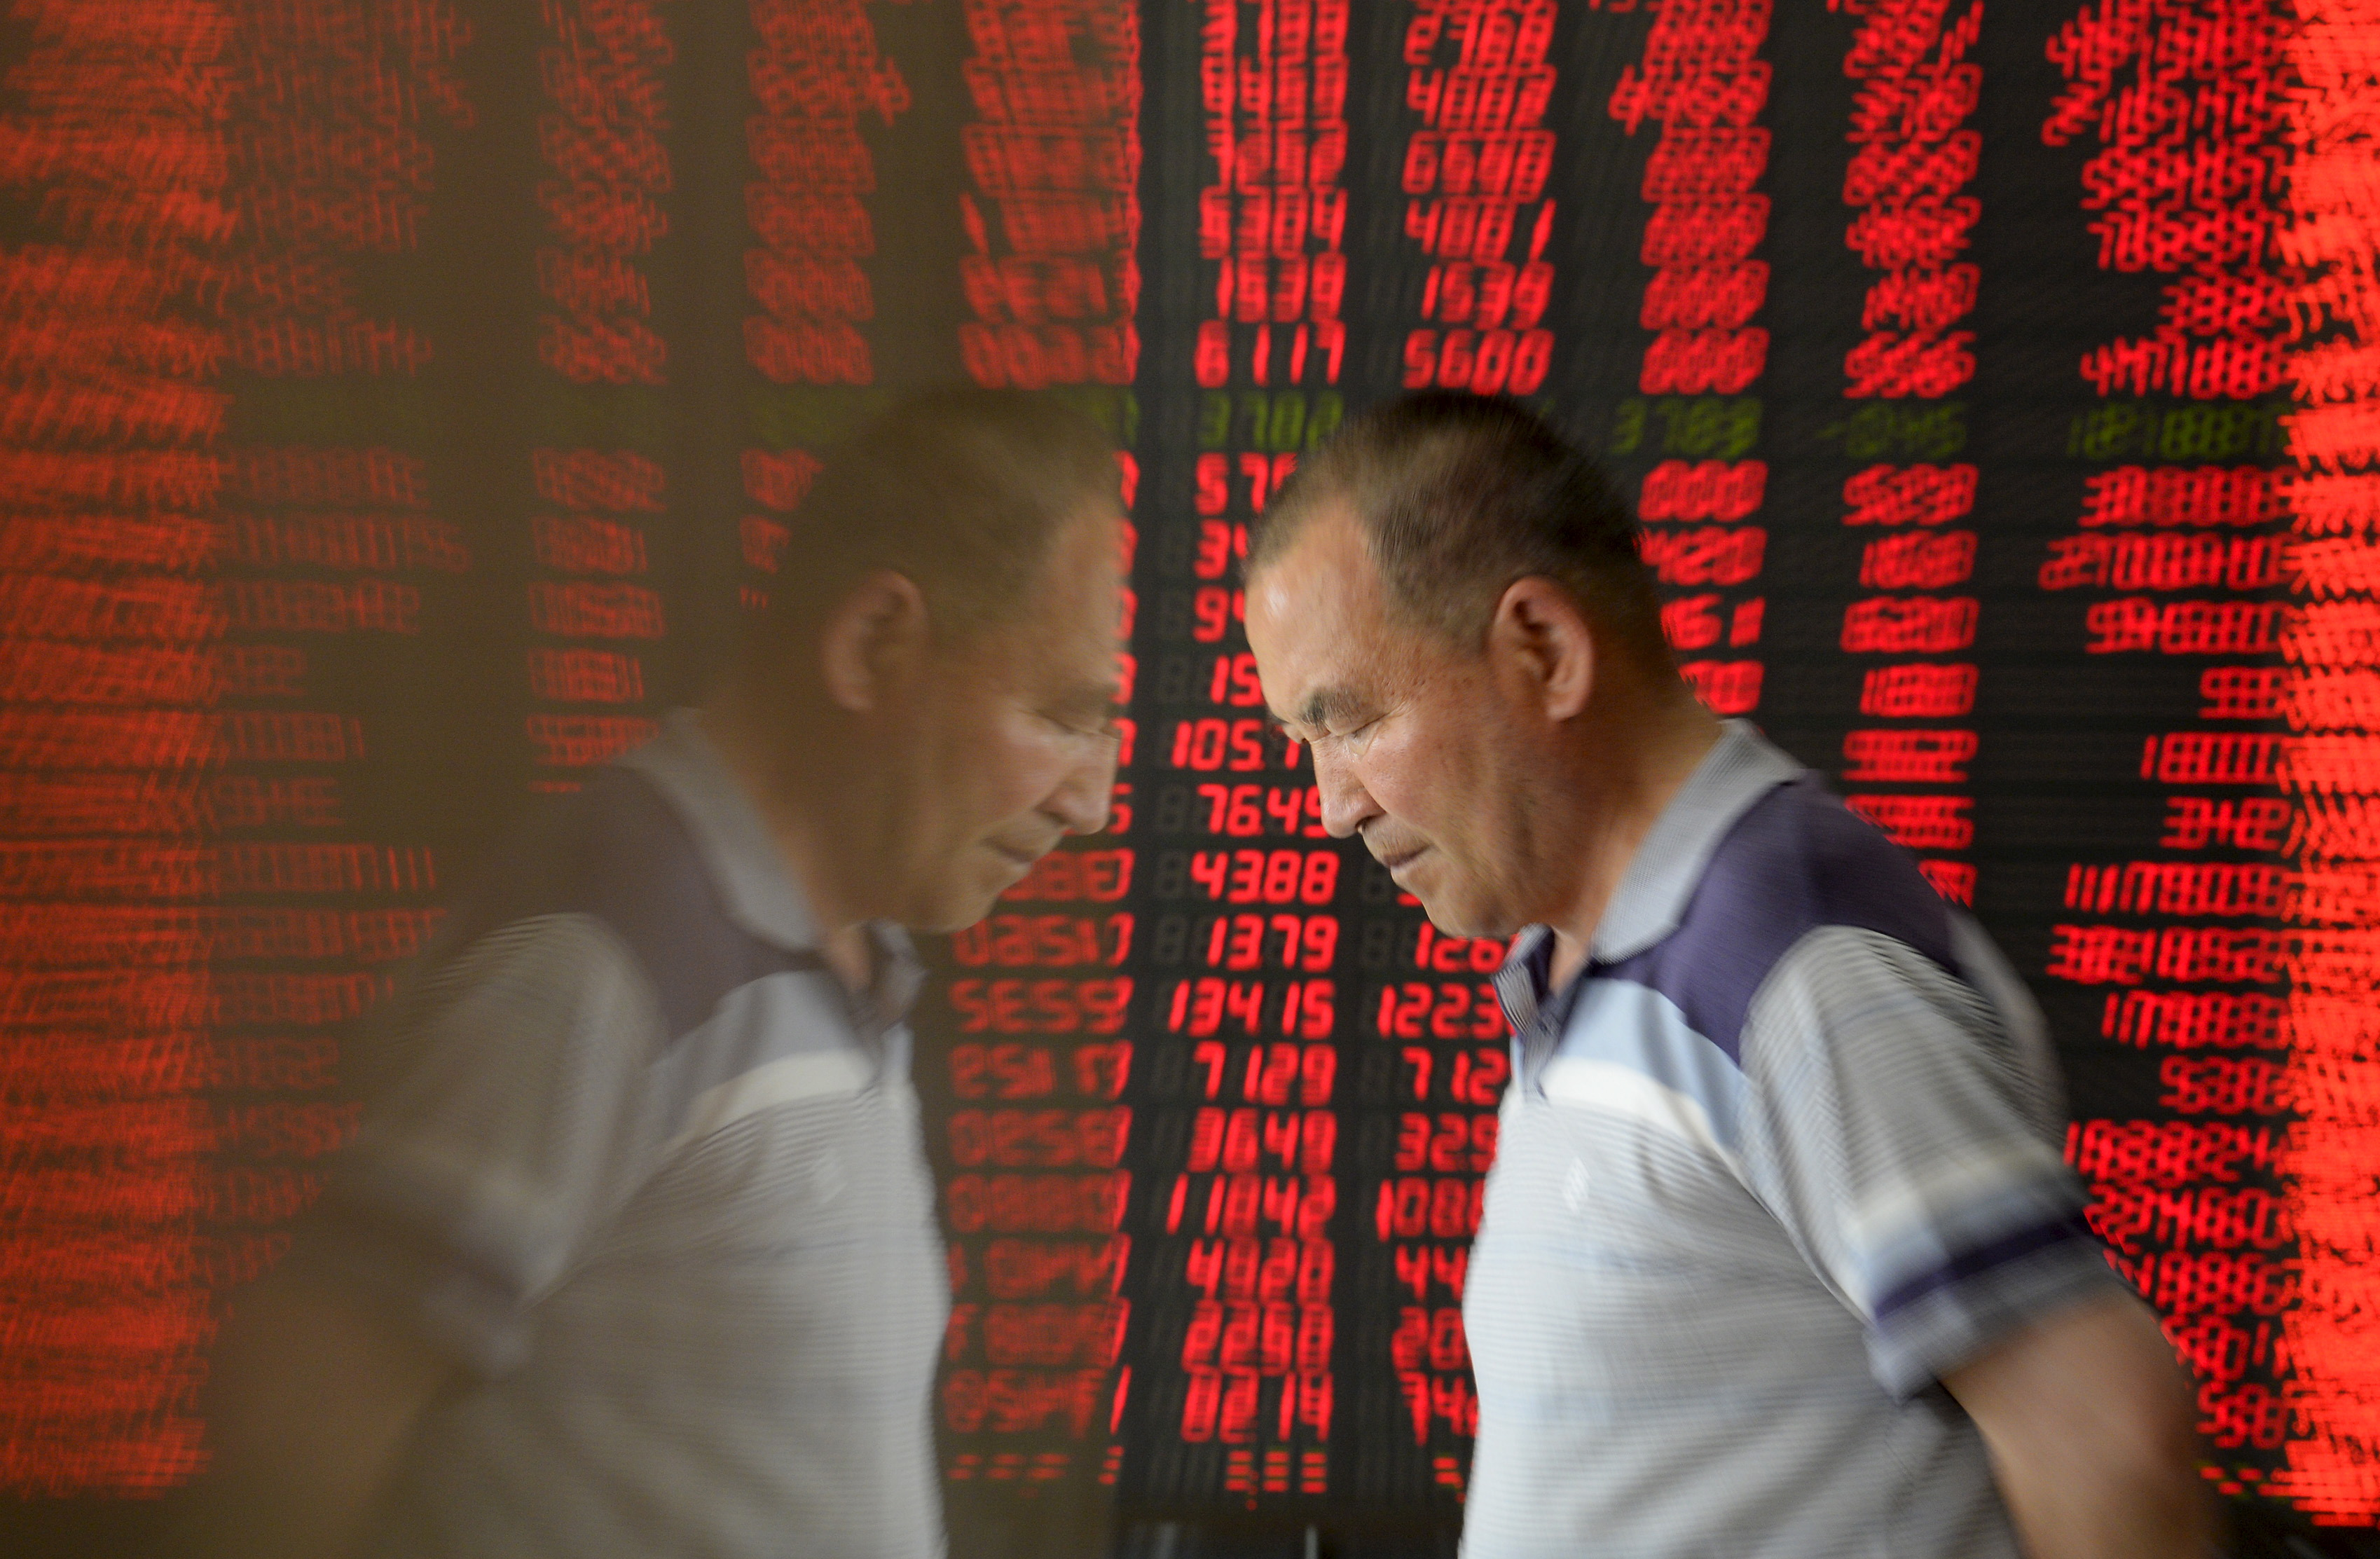 An investor is reflected on the surface of a wall as he walks past an electronic board showing stock information, filled with red figures indicating rising prices, at a brokerage house in Taiyuan, Shanxi province, China, May 27, 2015. REUTERS/Jon Woo